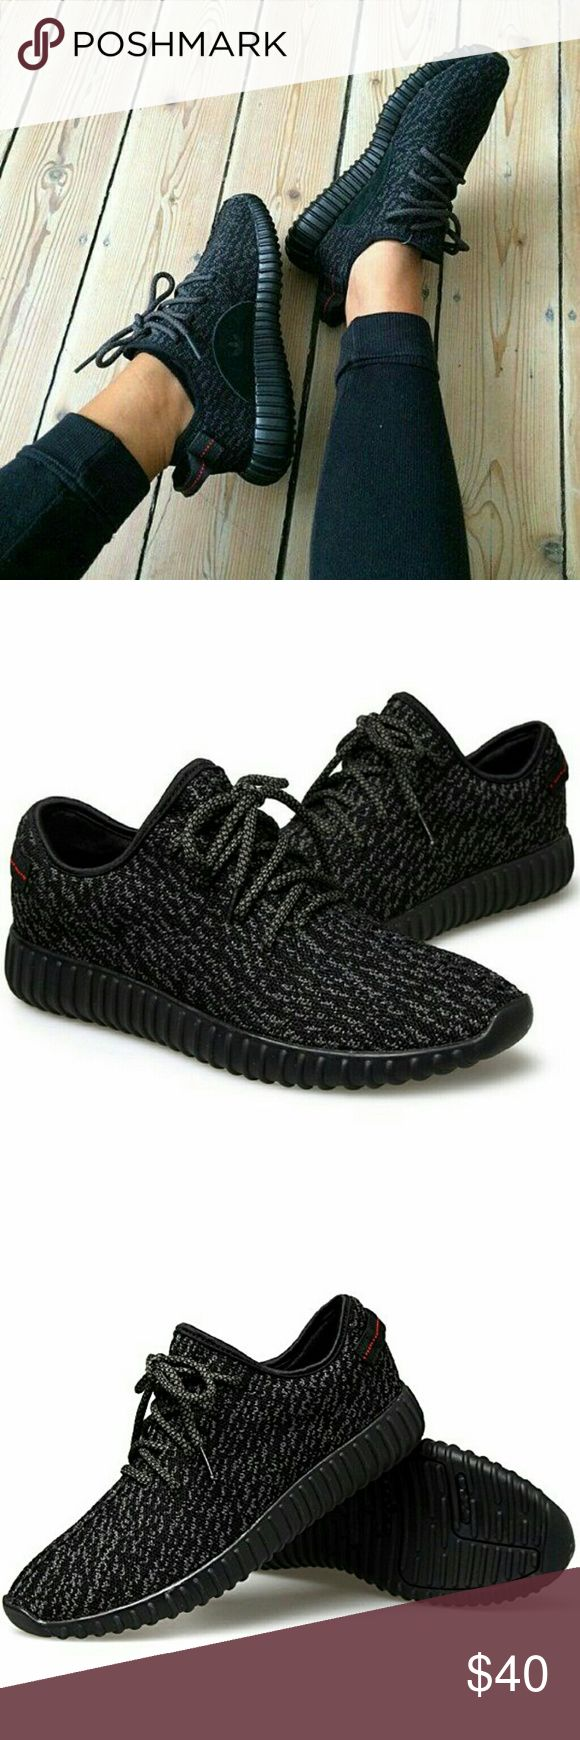 Adidas Version Black Running Shoes **UNISEX** ***LIMITED STOCK, STYLE WON'T BE RESTOCKED***  NEW Adidas Version from Kayne West Yeezy.  UNISEX sneakers with breathable fly woven fabric and rubber sole.  Note: **NOT REAL ADIDAS**  THIS IS men and women's unisex sneaker for Winter, Fall, Autumn or Summer.  Inspired by the latest ADIDAS trends, these shoes use a breathable Fly woven fabric and rubber sole.   Men   Women 6.5.  =  8.5    7   =    9 7.5   =  9.5    8   =   10 8.5.  = 10.5    9…